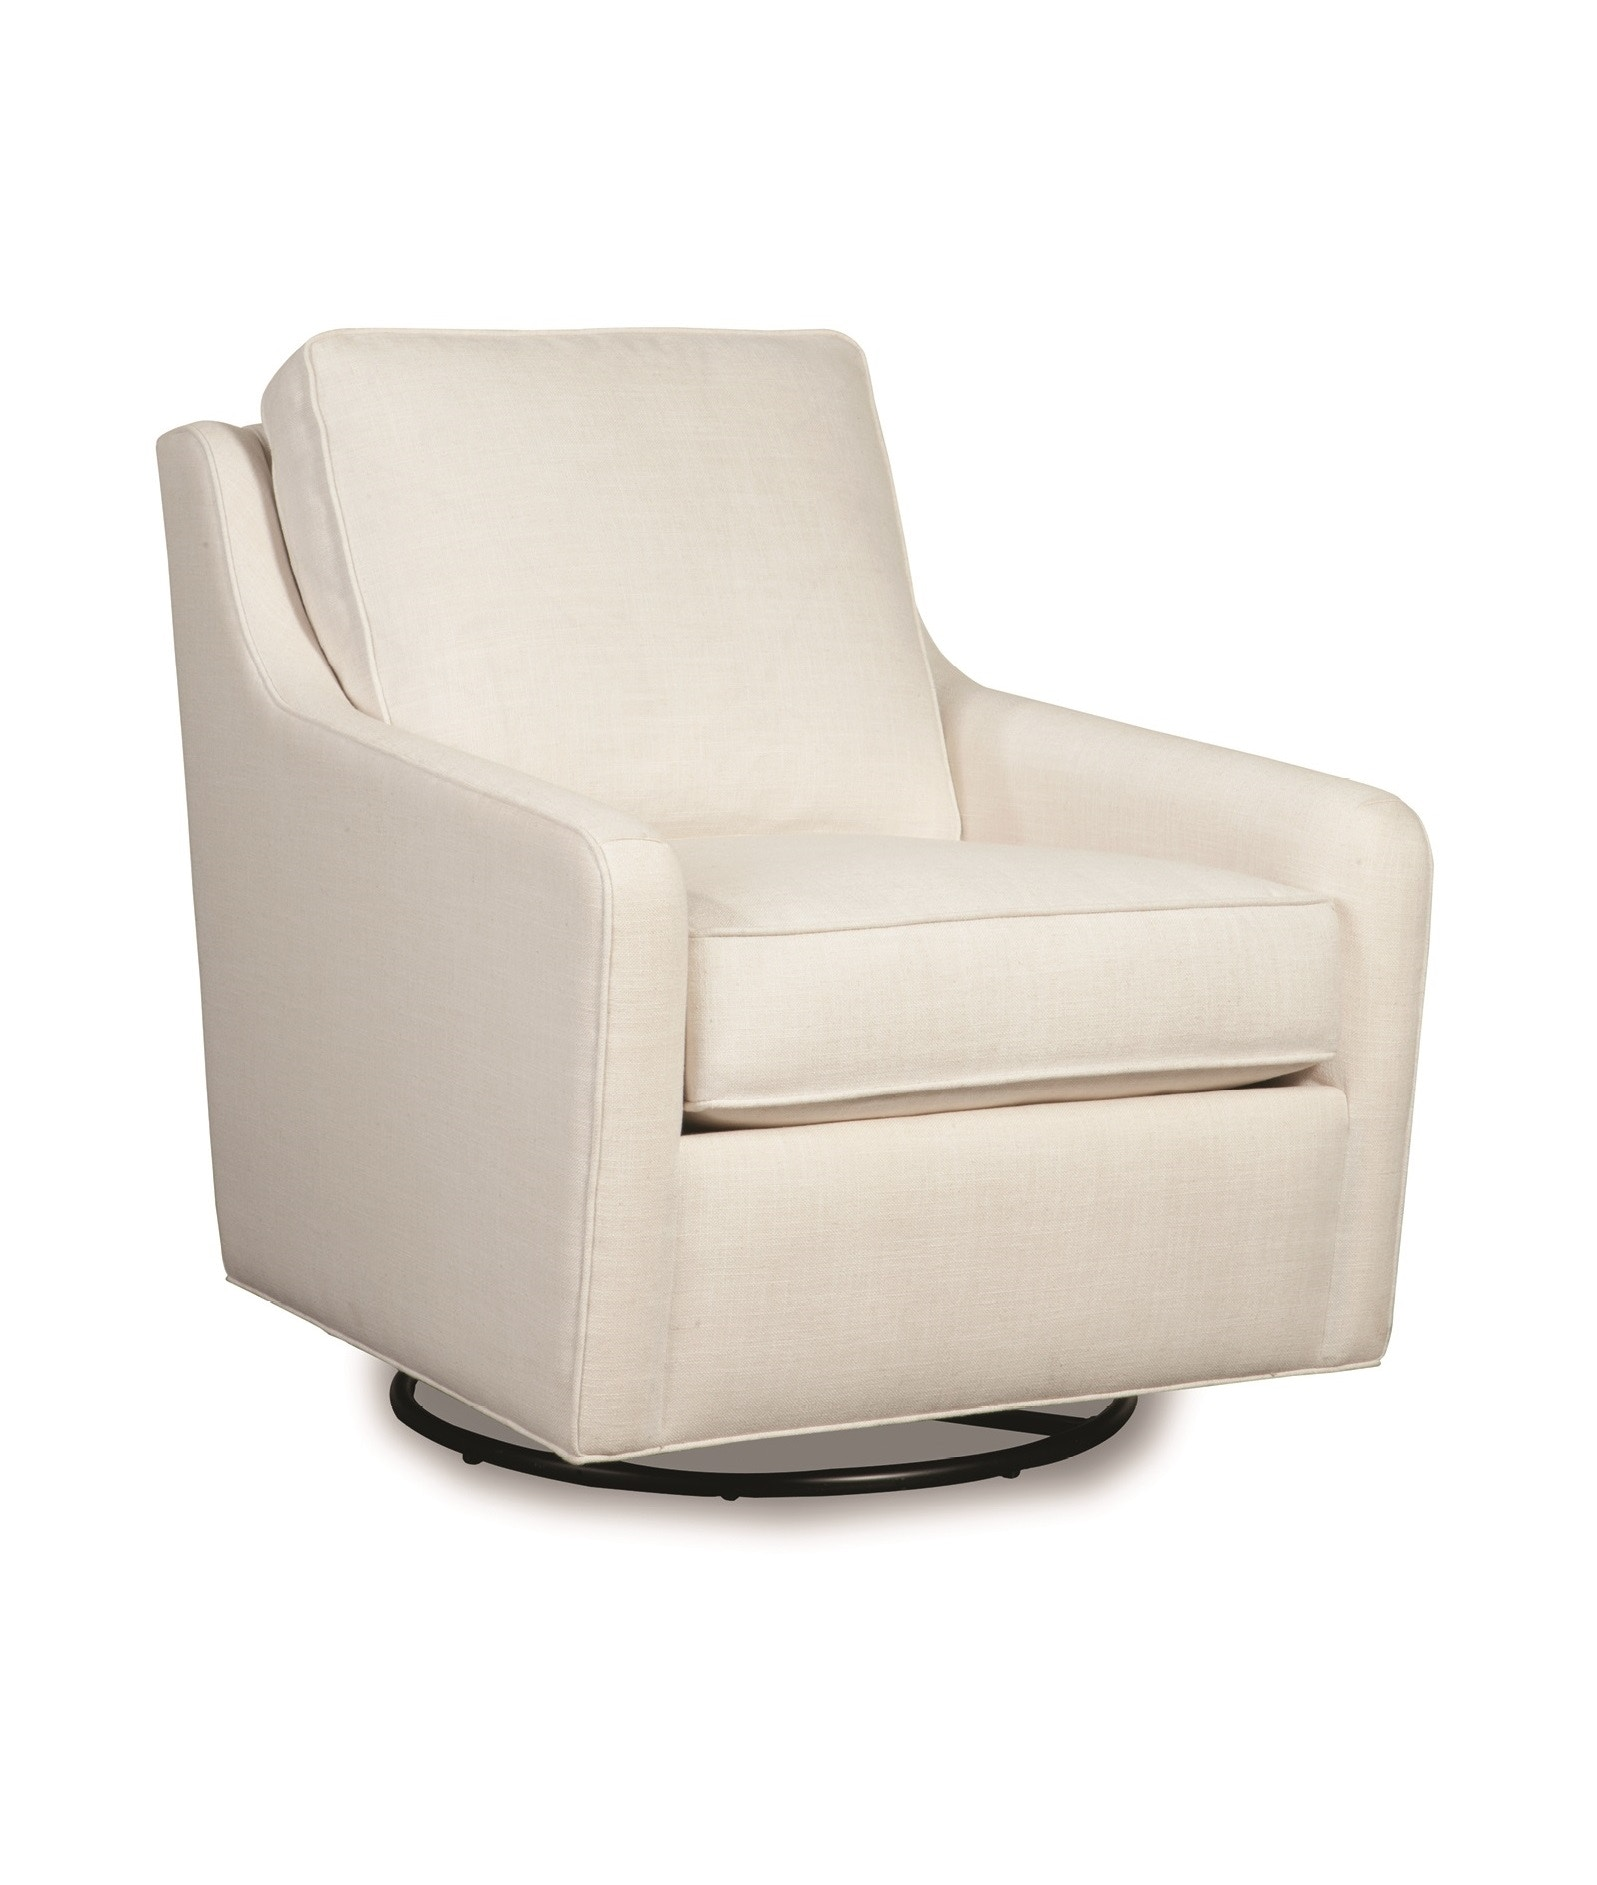 swivel glider chair. WES Sound Swivel Glider Chair (loose Back Cushion) 1610 From Walter E. Smithe